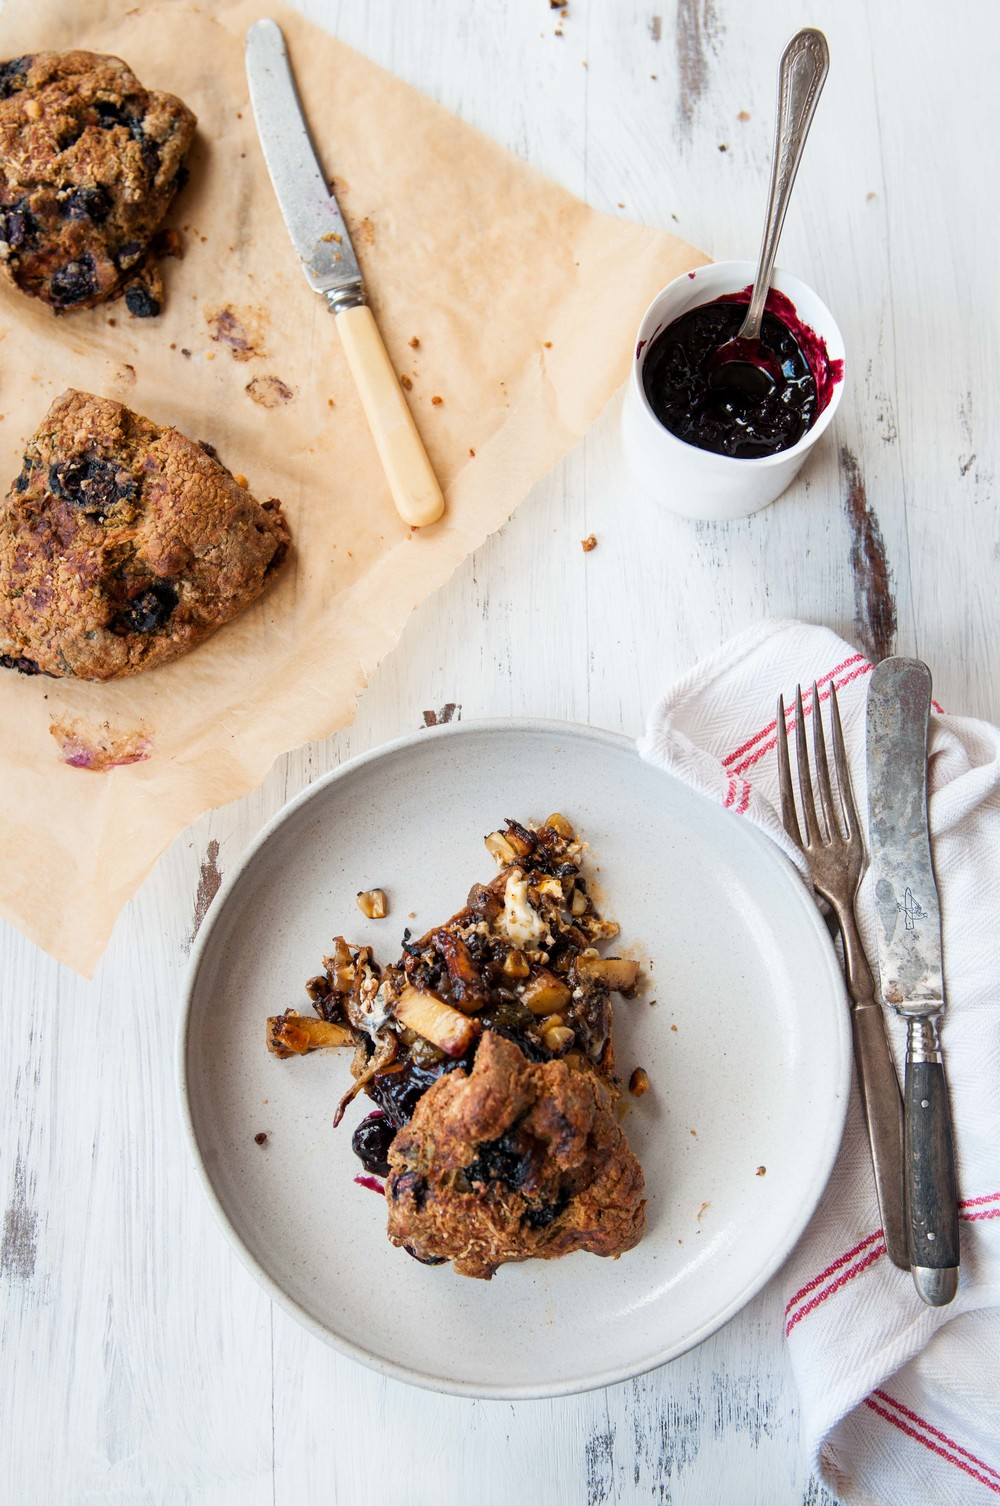 GLUTEN FREE BLUEBERRY SCONES + BLUEBERRY BALSAMIC SAUCE